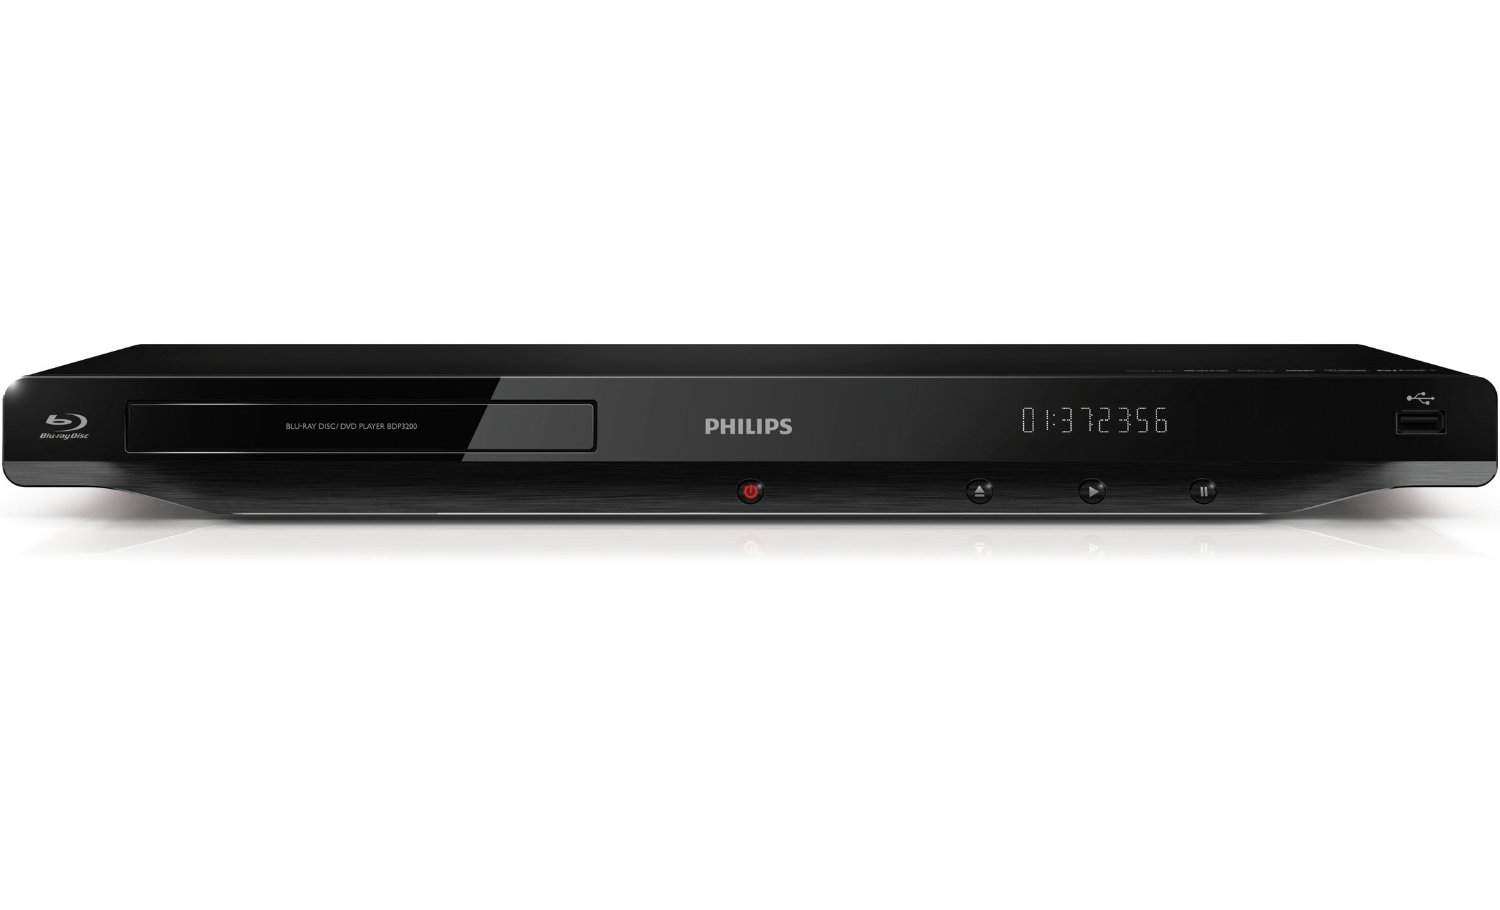 philips hd blu ray disc dvd player divx plus bdp3200 05. Black Bedroom Furniture Sets. Home Design Ideas